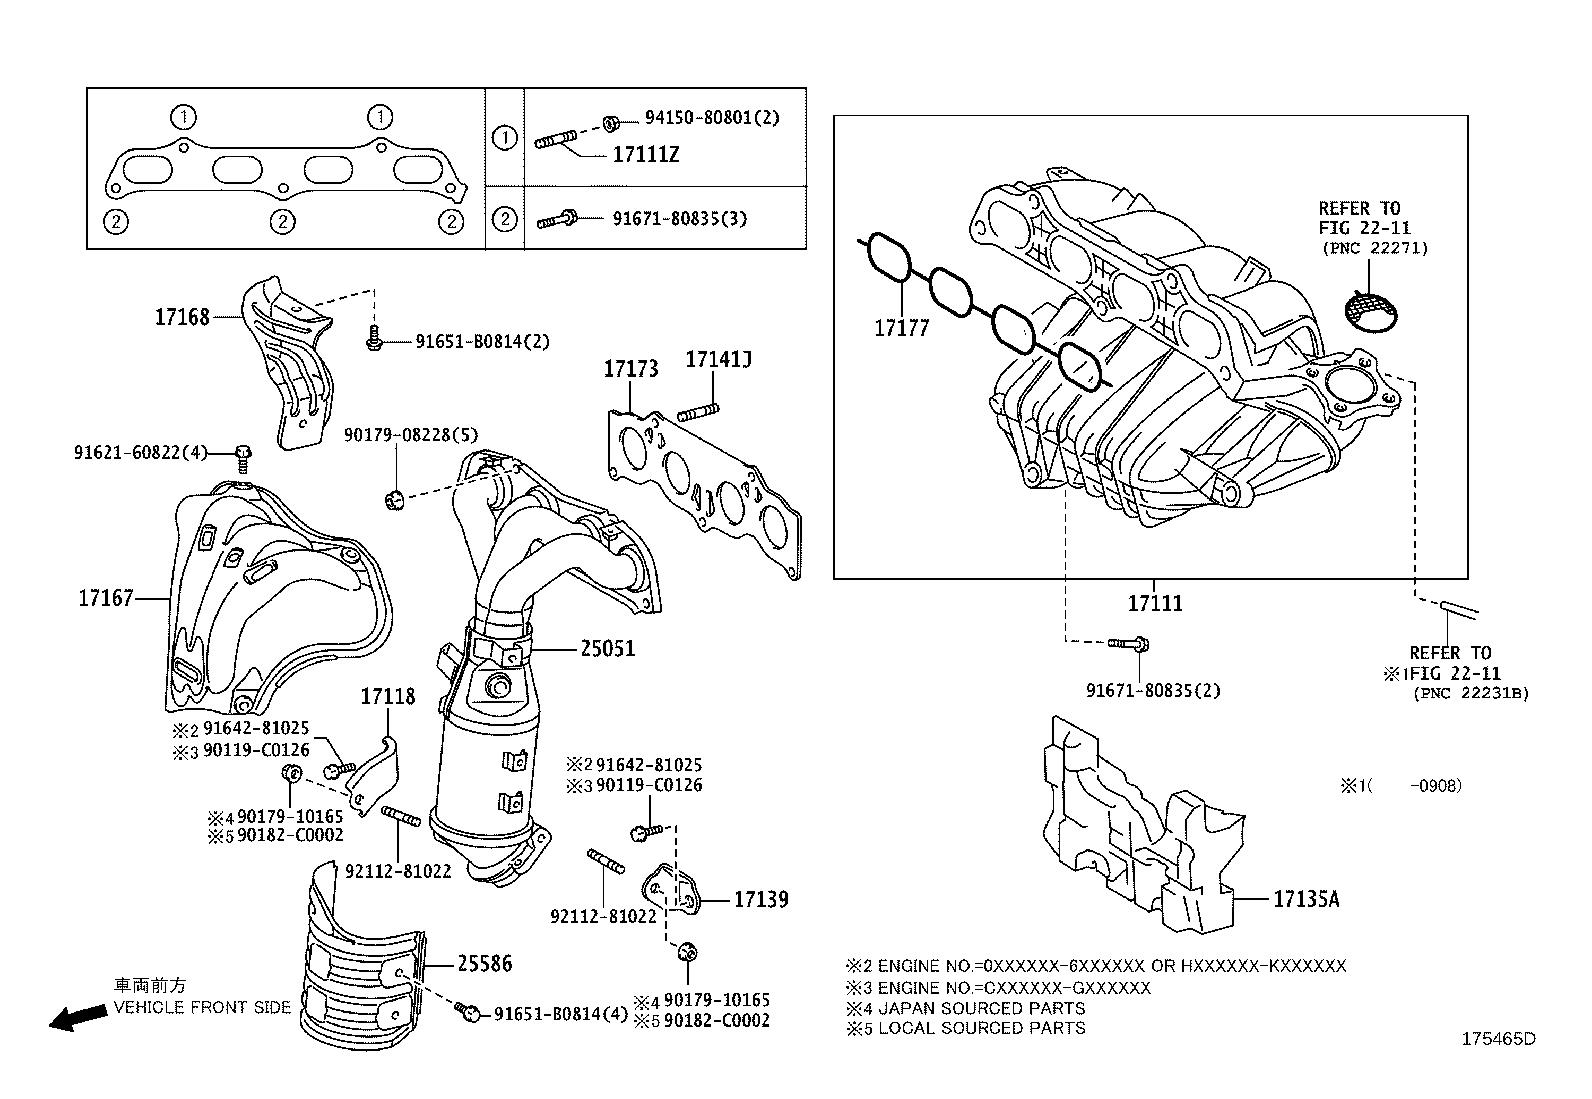 Scion Xb Engine Intake Manifold  Engine Component That Directs Air To The Engine